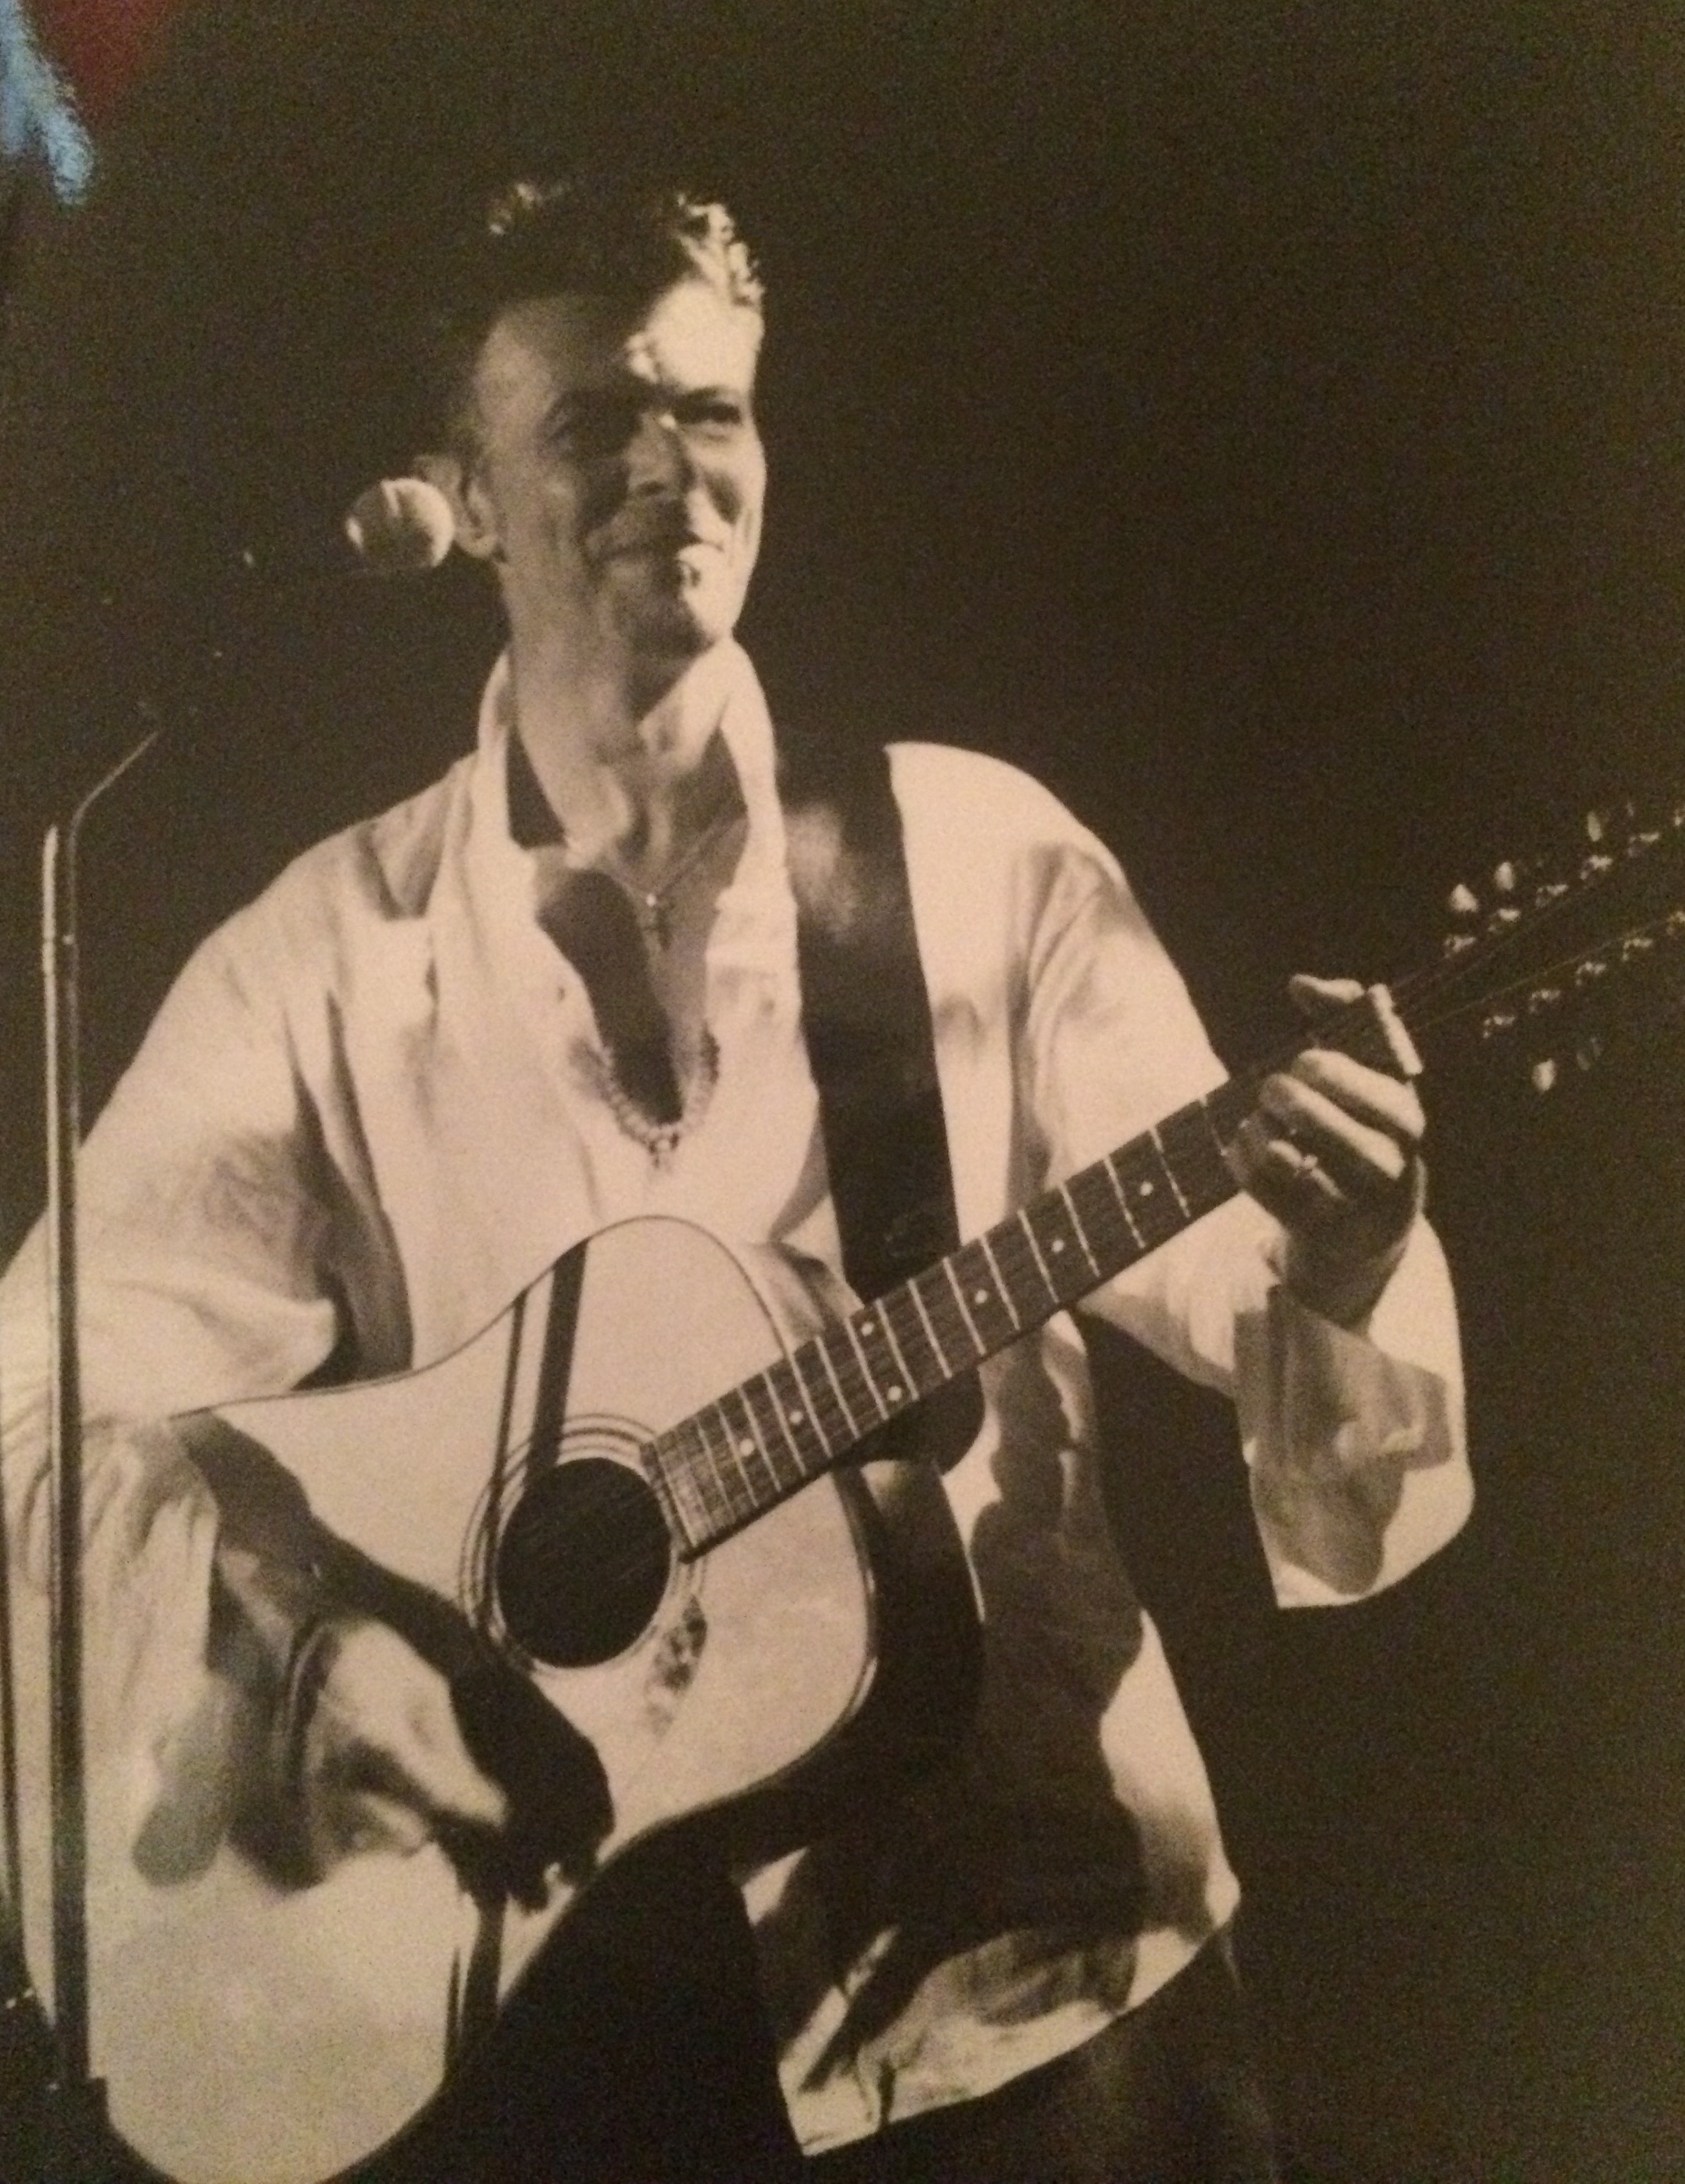 David Bowie by Kelley Curtis Chili Pepper3 10-7-97